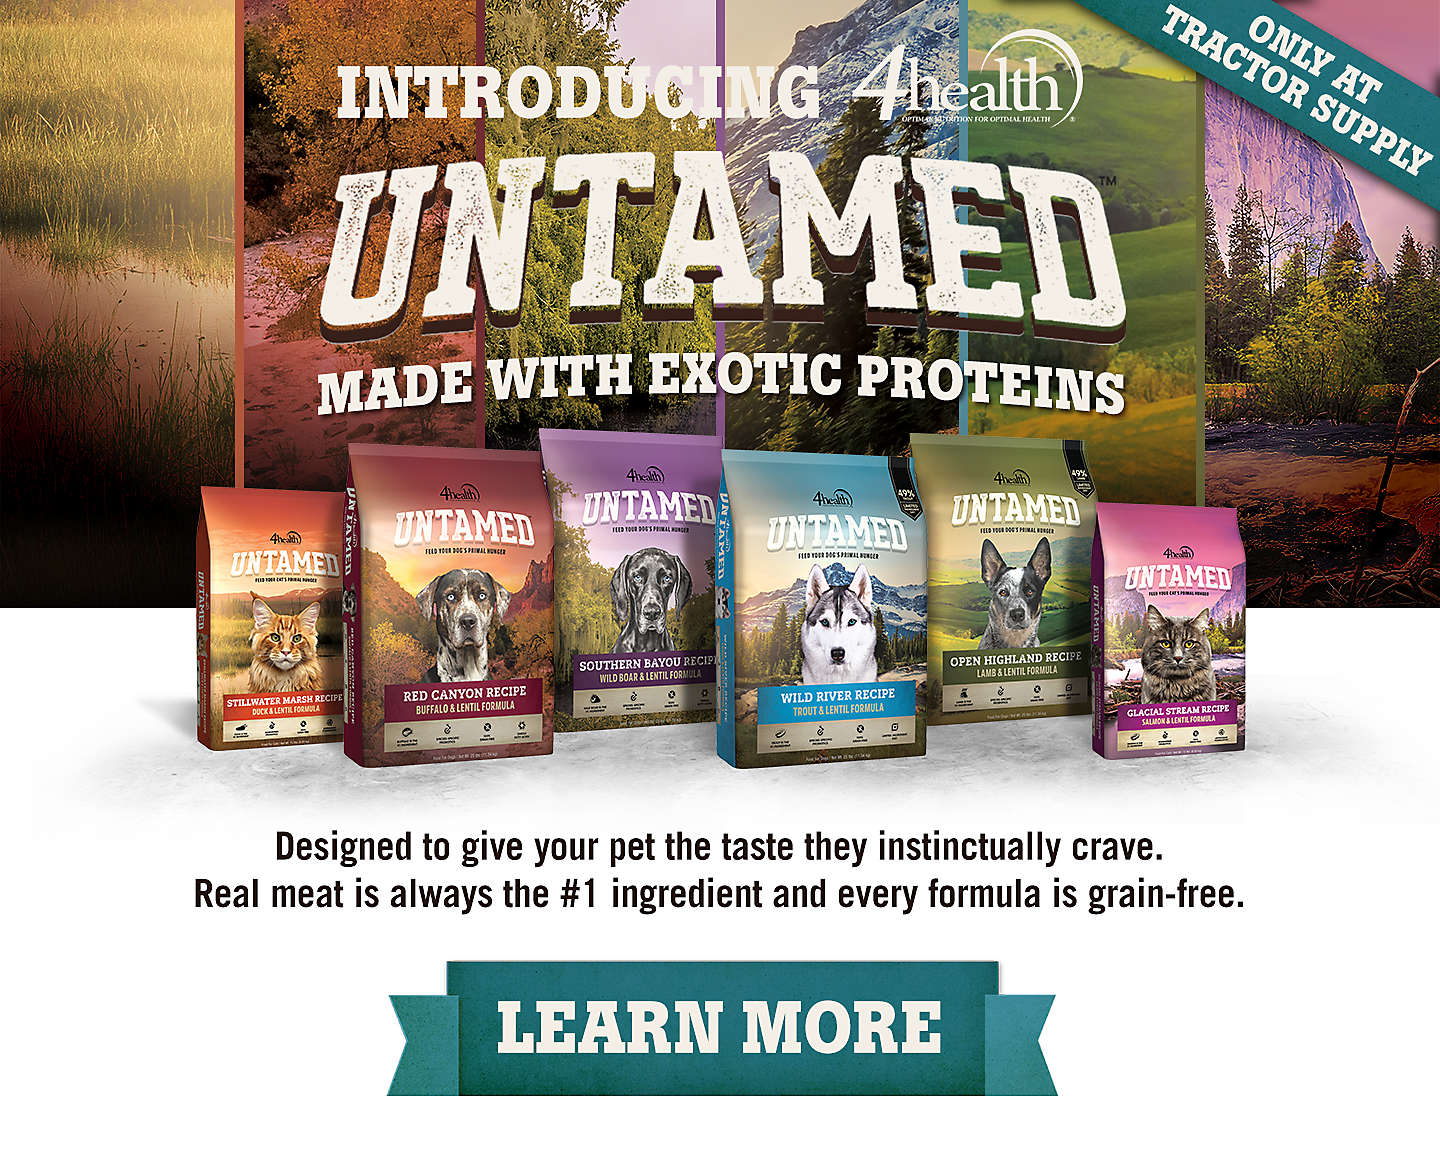 Introducing 4health Untamed Protein-Rich Pet Food